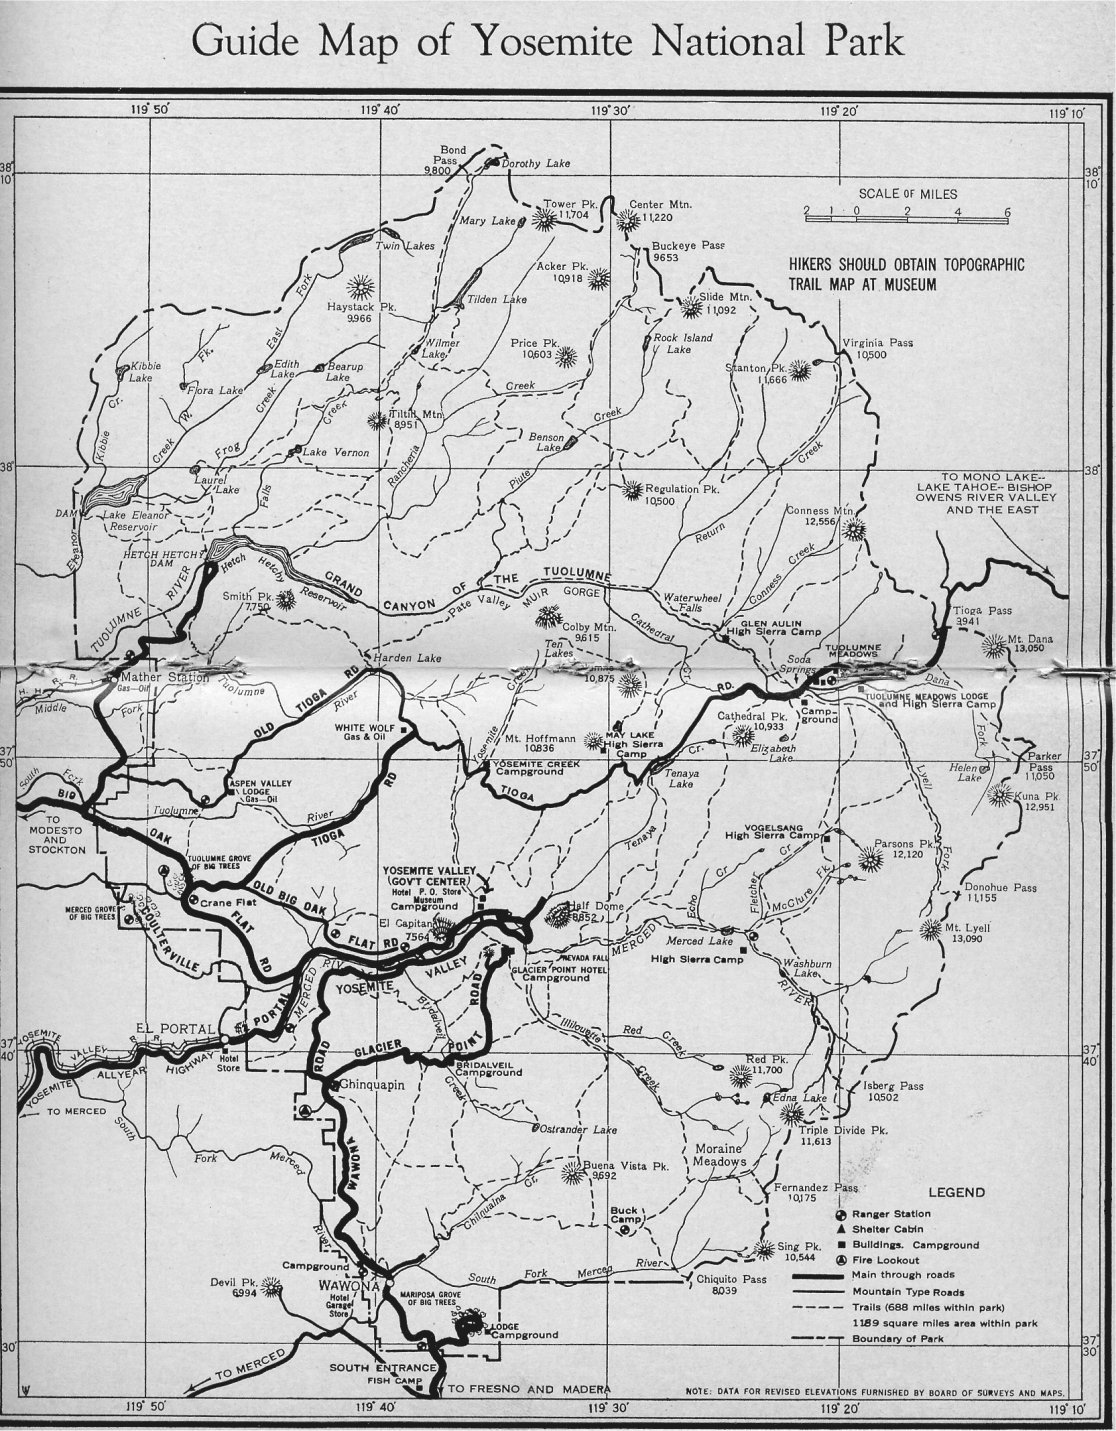 Yosemite Historic Maps Library Online 61 Willys Utility Wagon Wiring Diagram 1961 Not Dated Map Appears To Be In The Mid 1950s Exact Also Reprinted John W Bingaman Pathways 1968